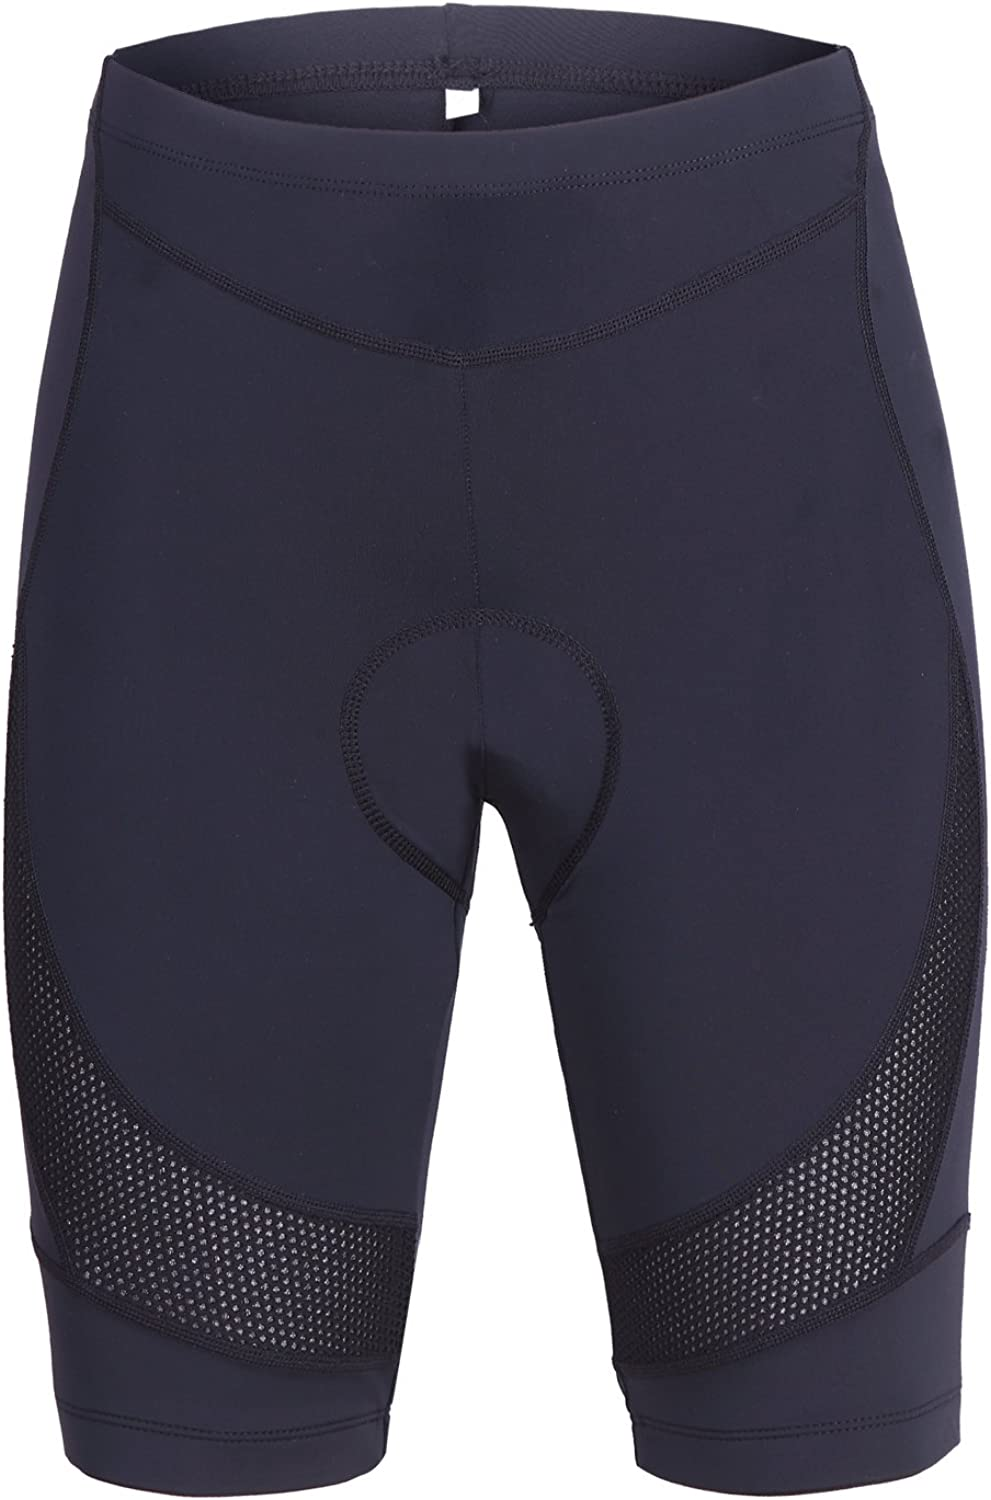 Unisex Bike Cycling Shorts Pant Gel Padded Bicycle Cycle Sport Bottom Underwear